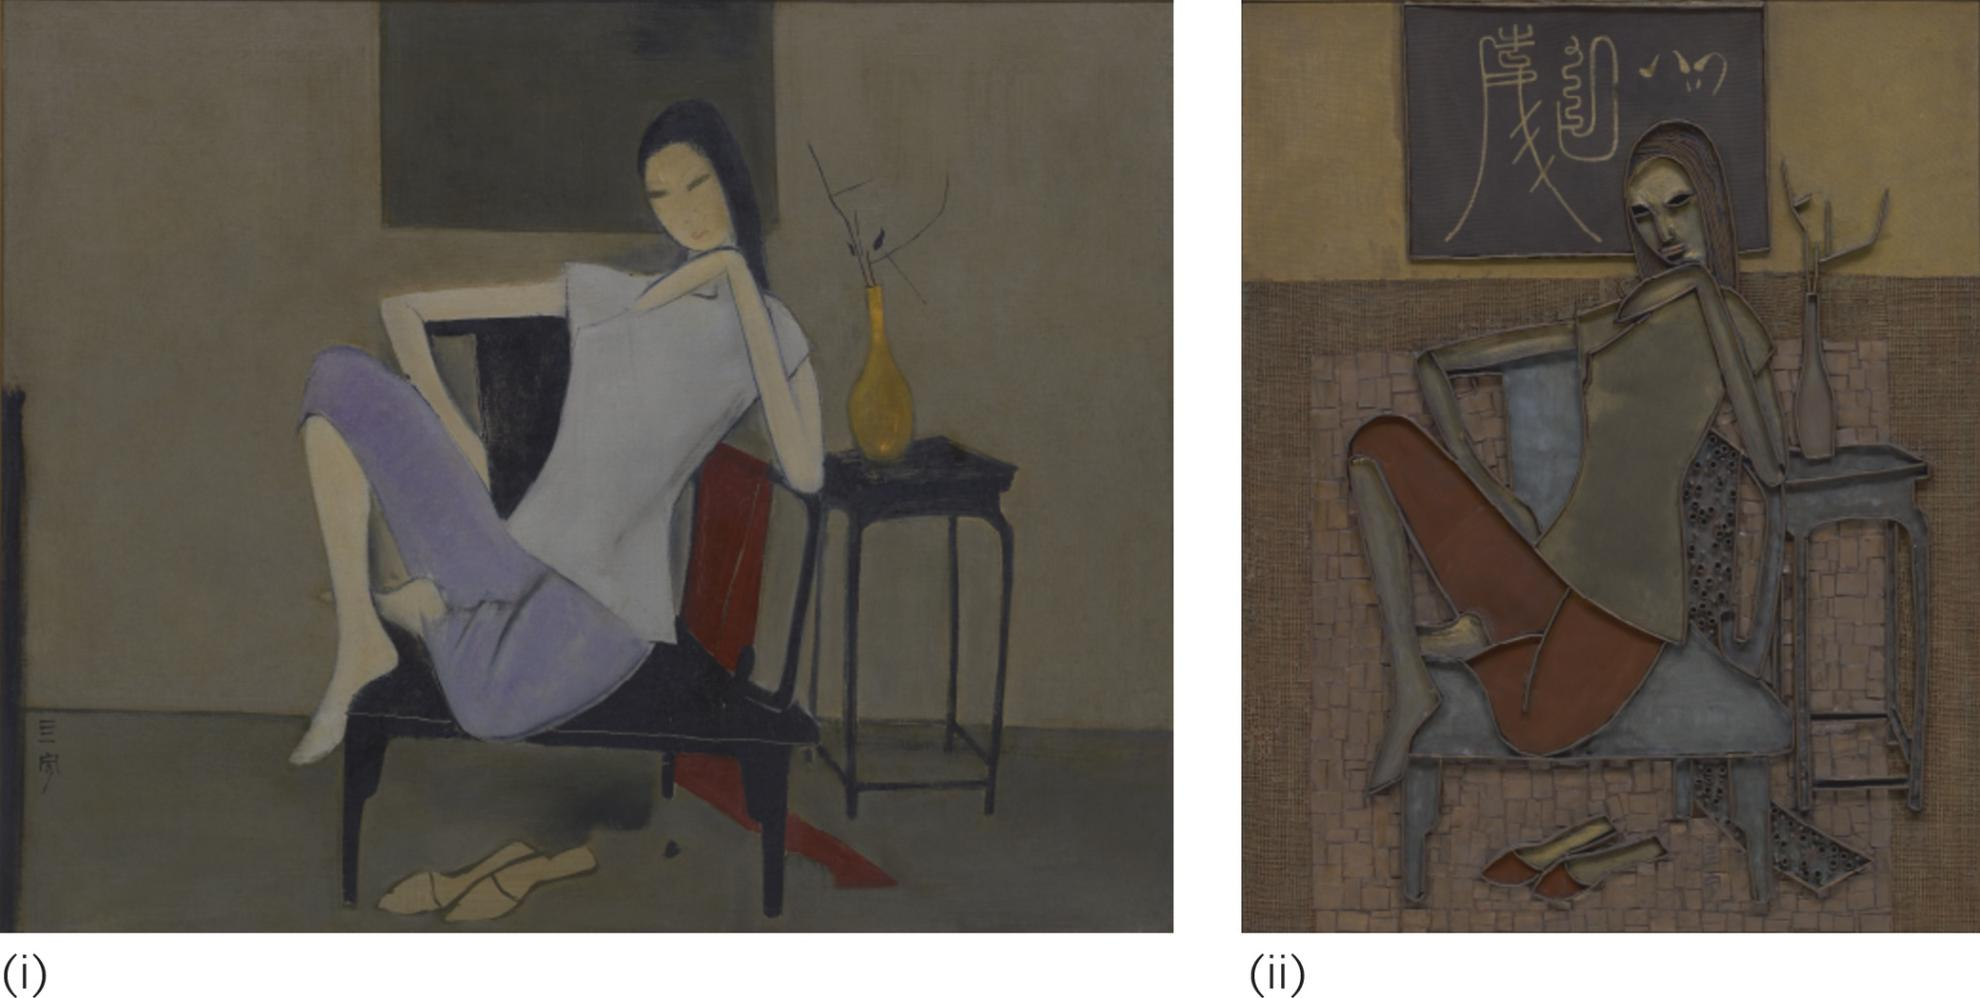 Cheong Soo Pieng-(i) Untitled (Chinese Woman); (ii) Untitled-1969